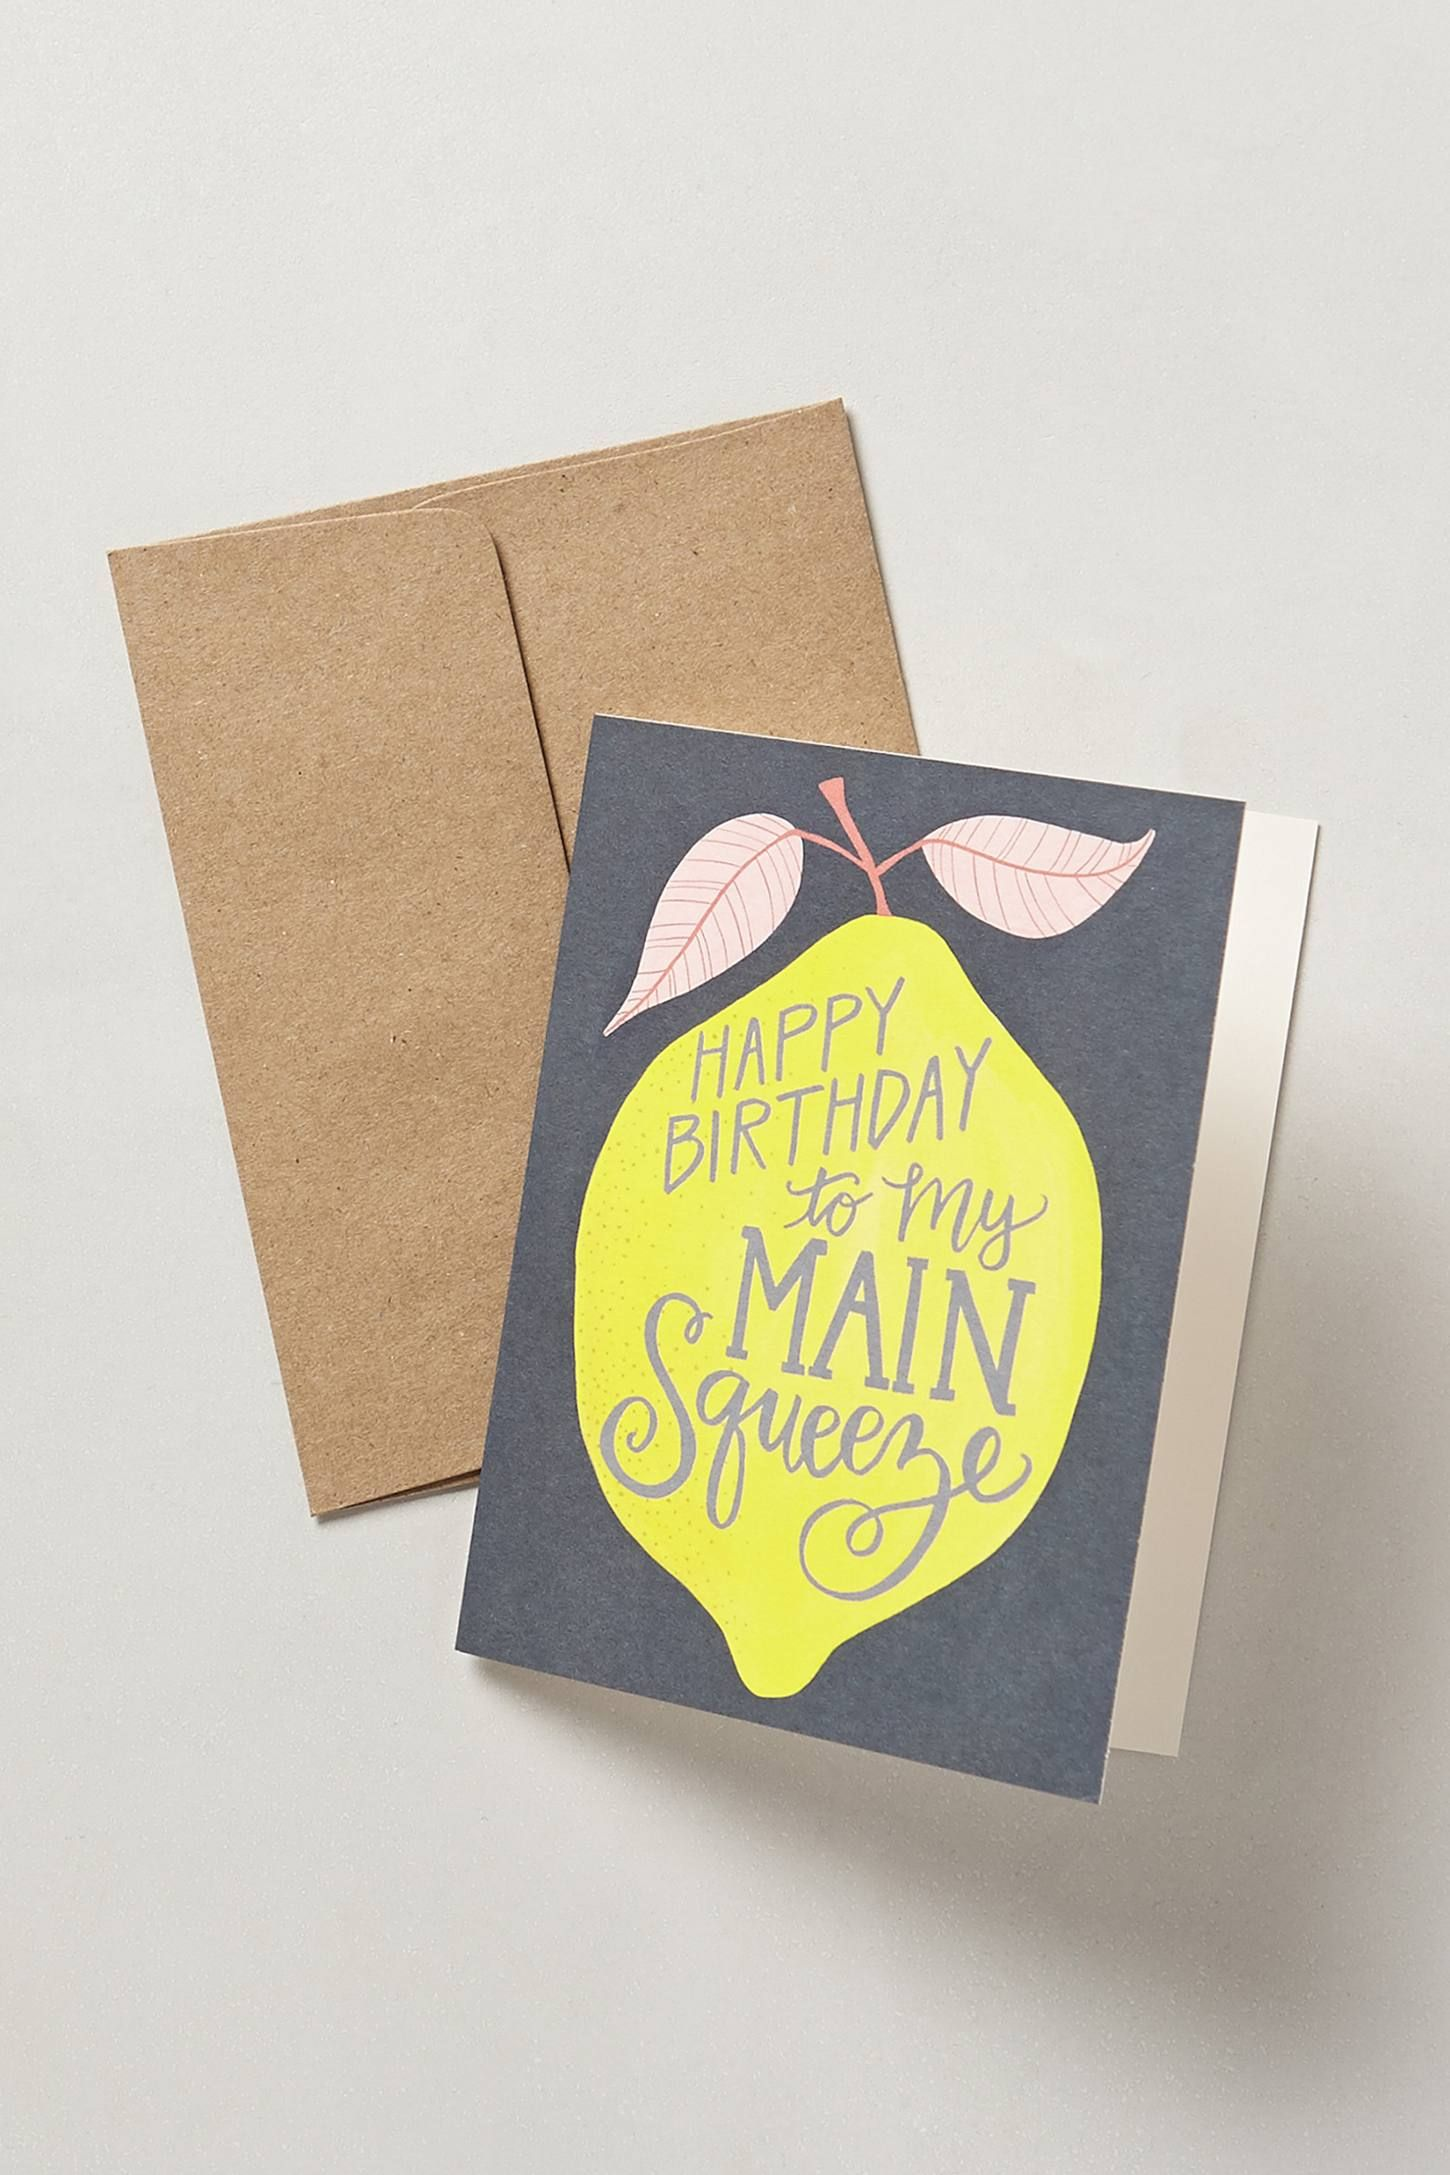 Main Squeeze Birthday Card Main Squeeze Cards And Paper Products